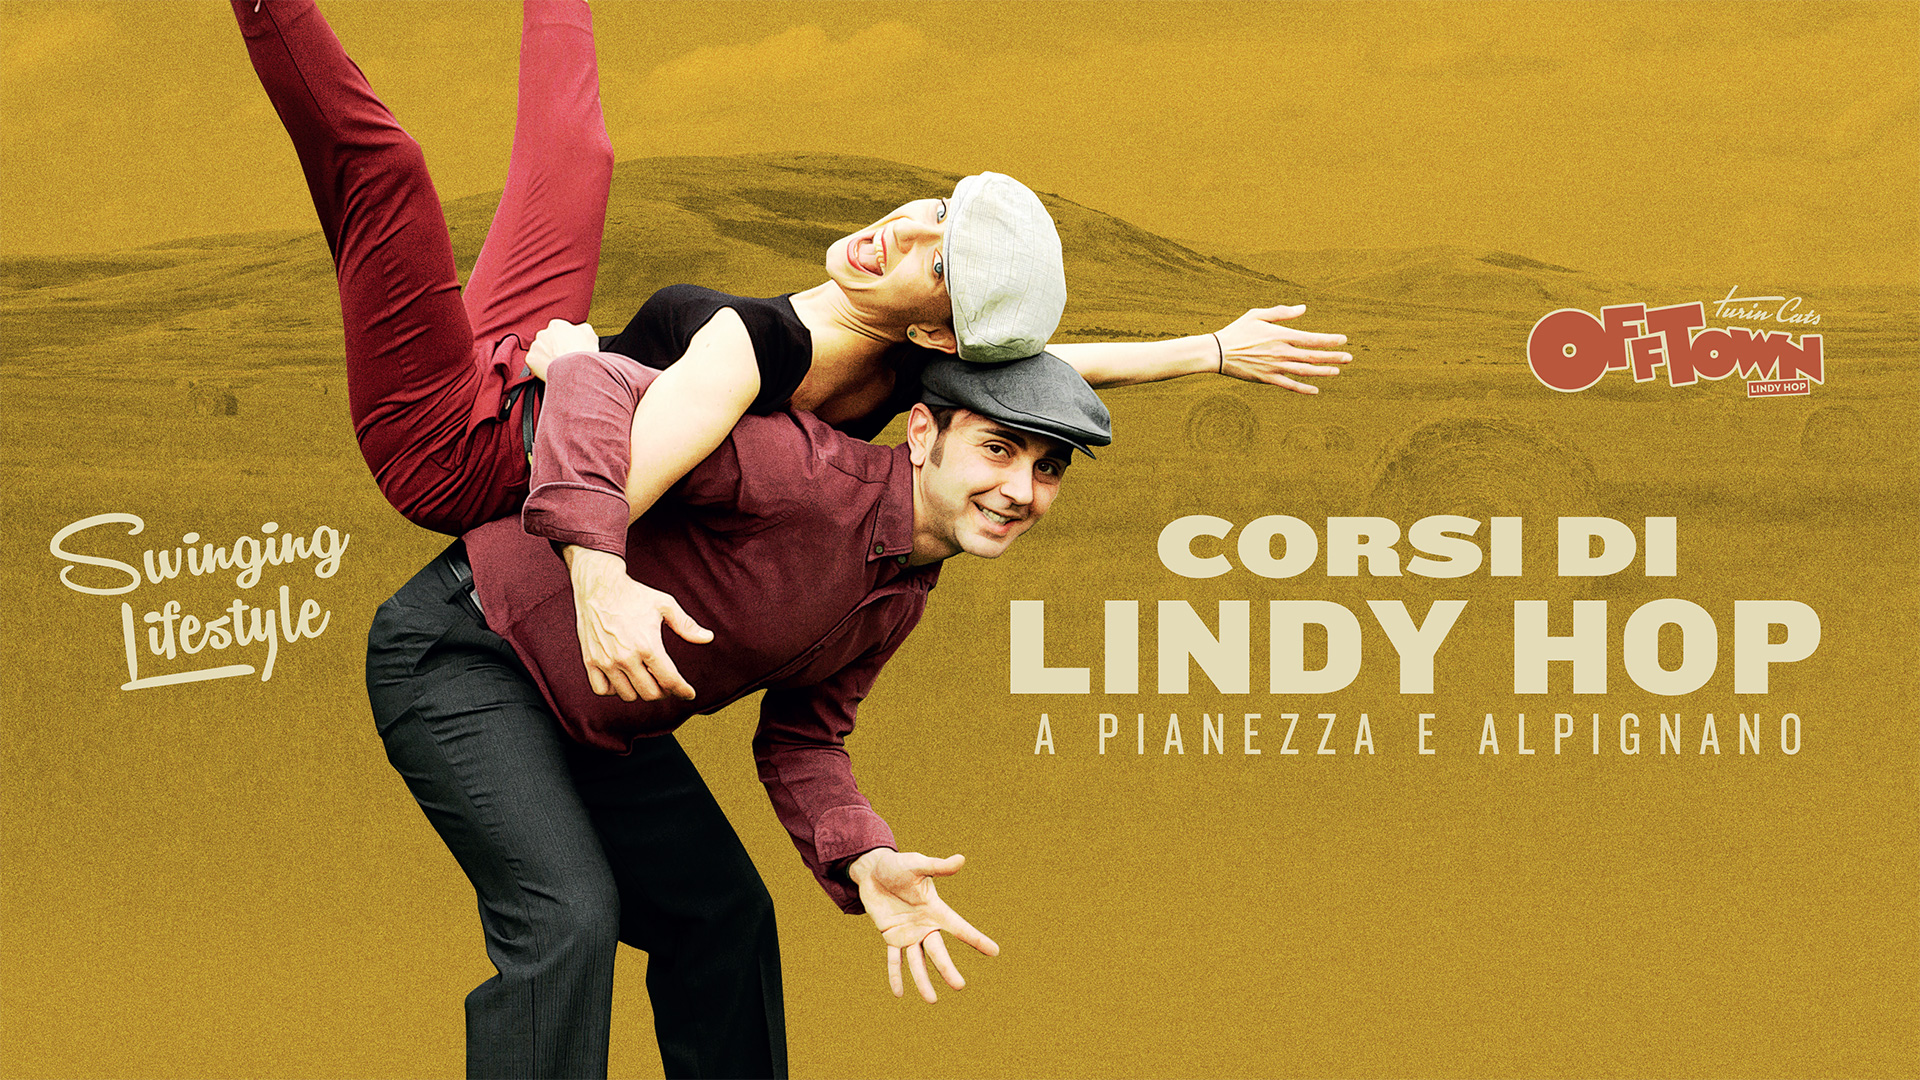 OffTown Lindy Hop